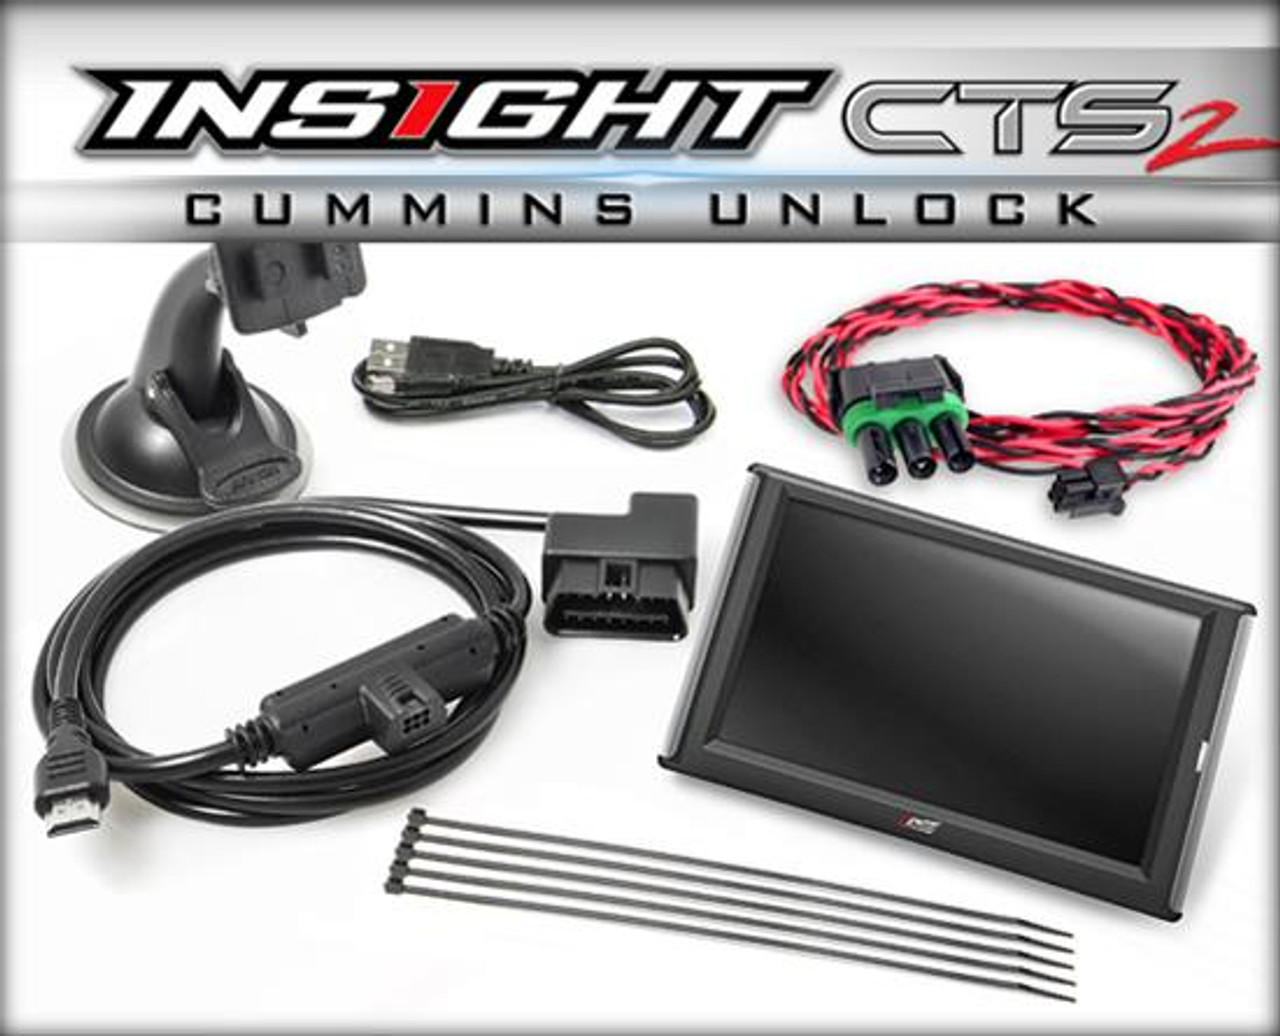 Edge Insight CTS2 Monitors Performance Meter 84132 FREE SHIPPING